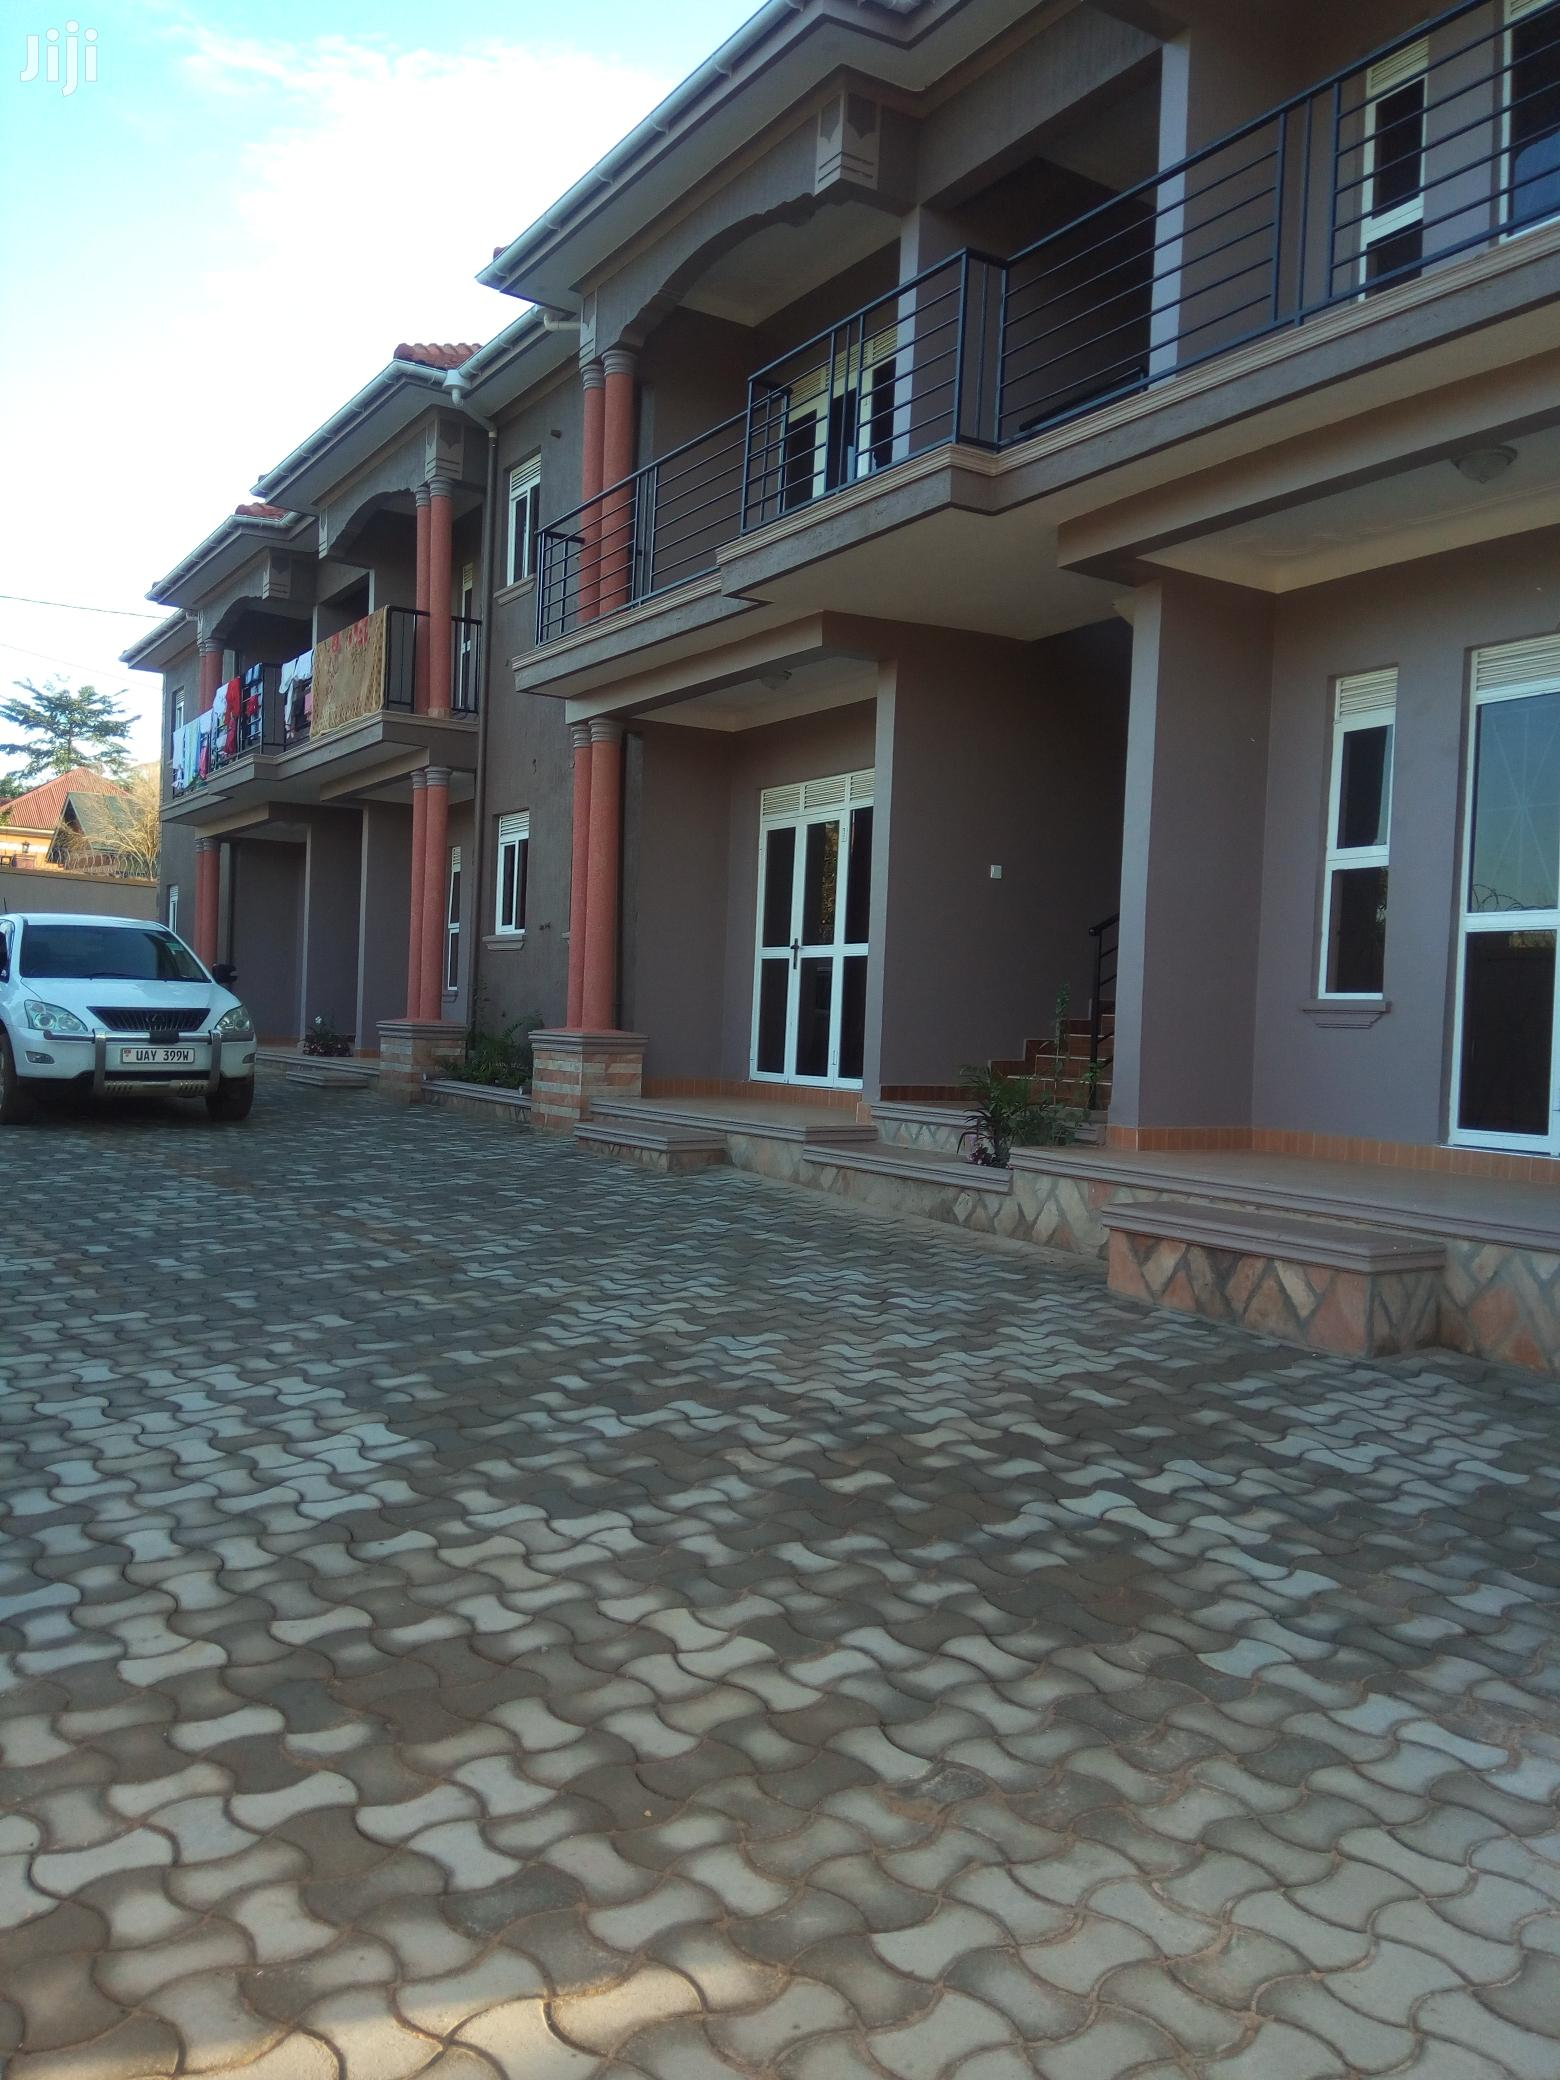 Kyanja Classy Apartments On Sell | Houses & Apartments For Sale for sale in Kampala, Central Region, Uganda